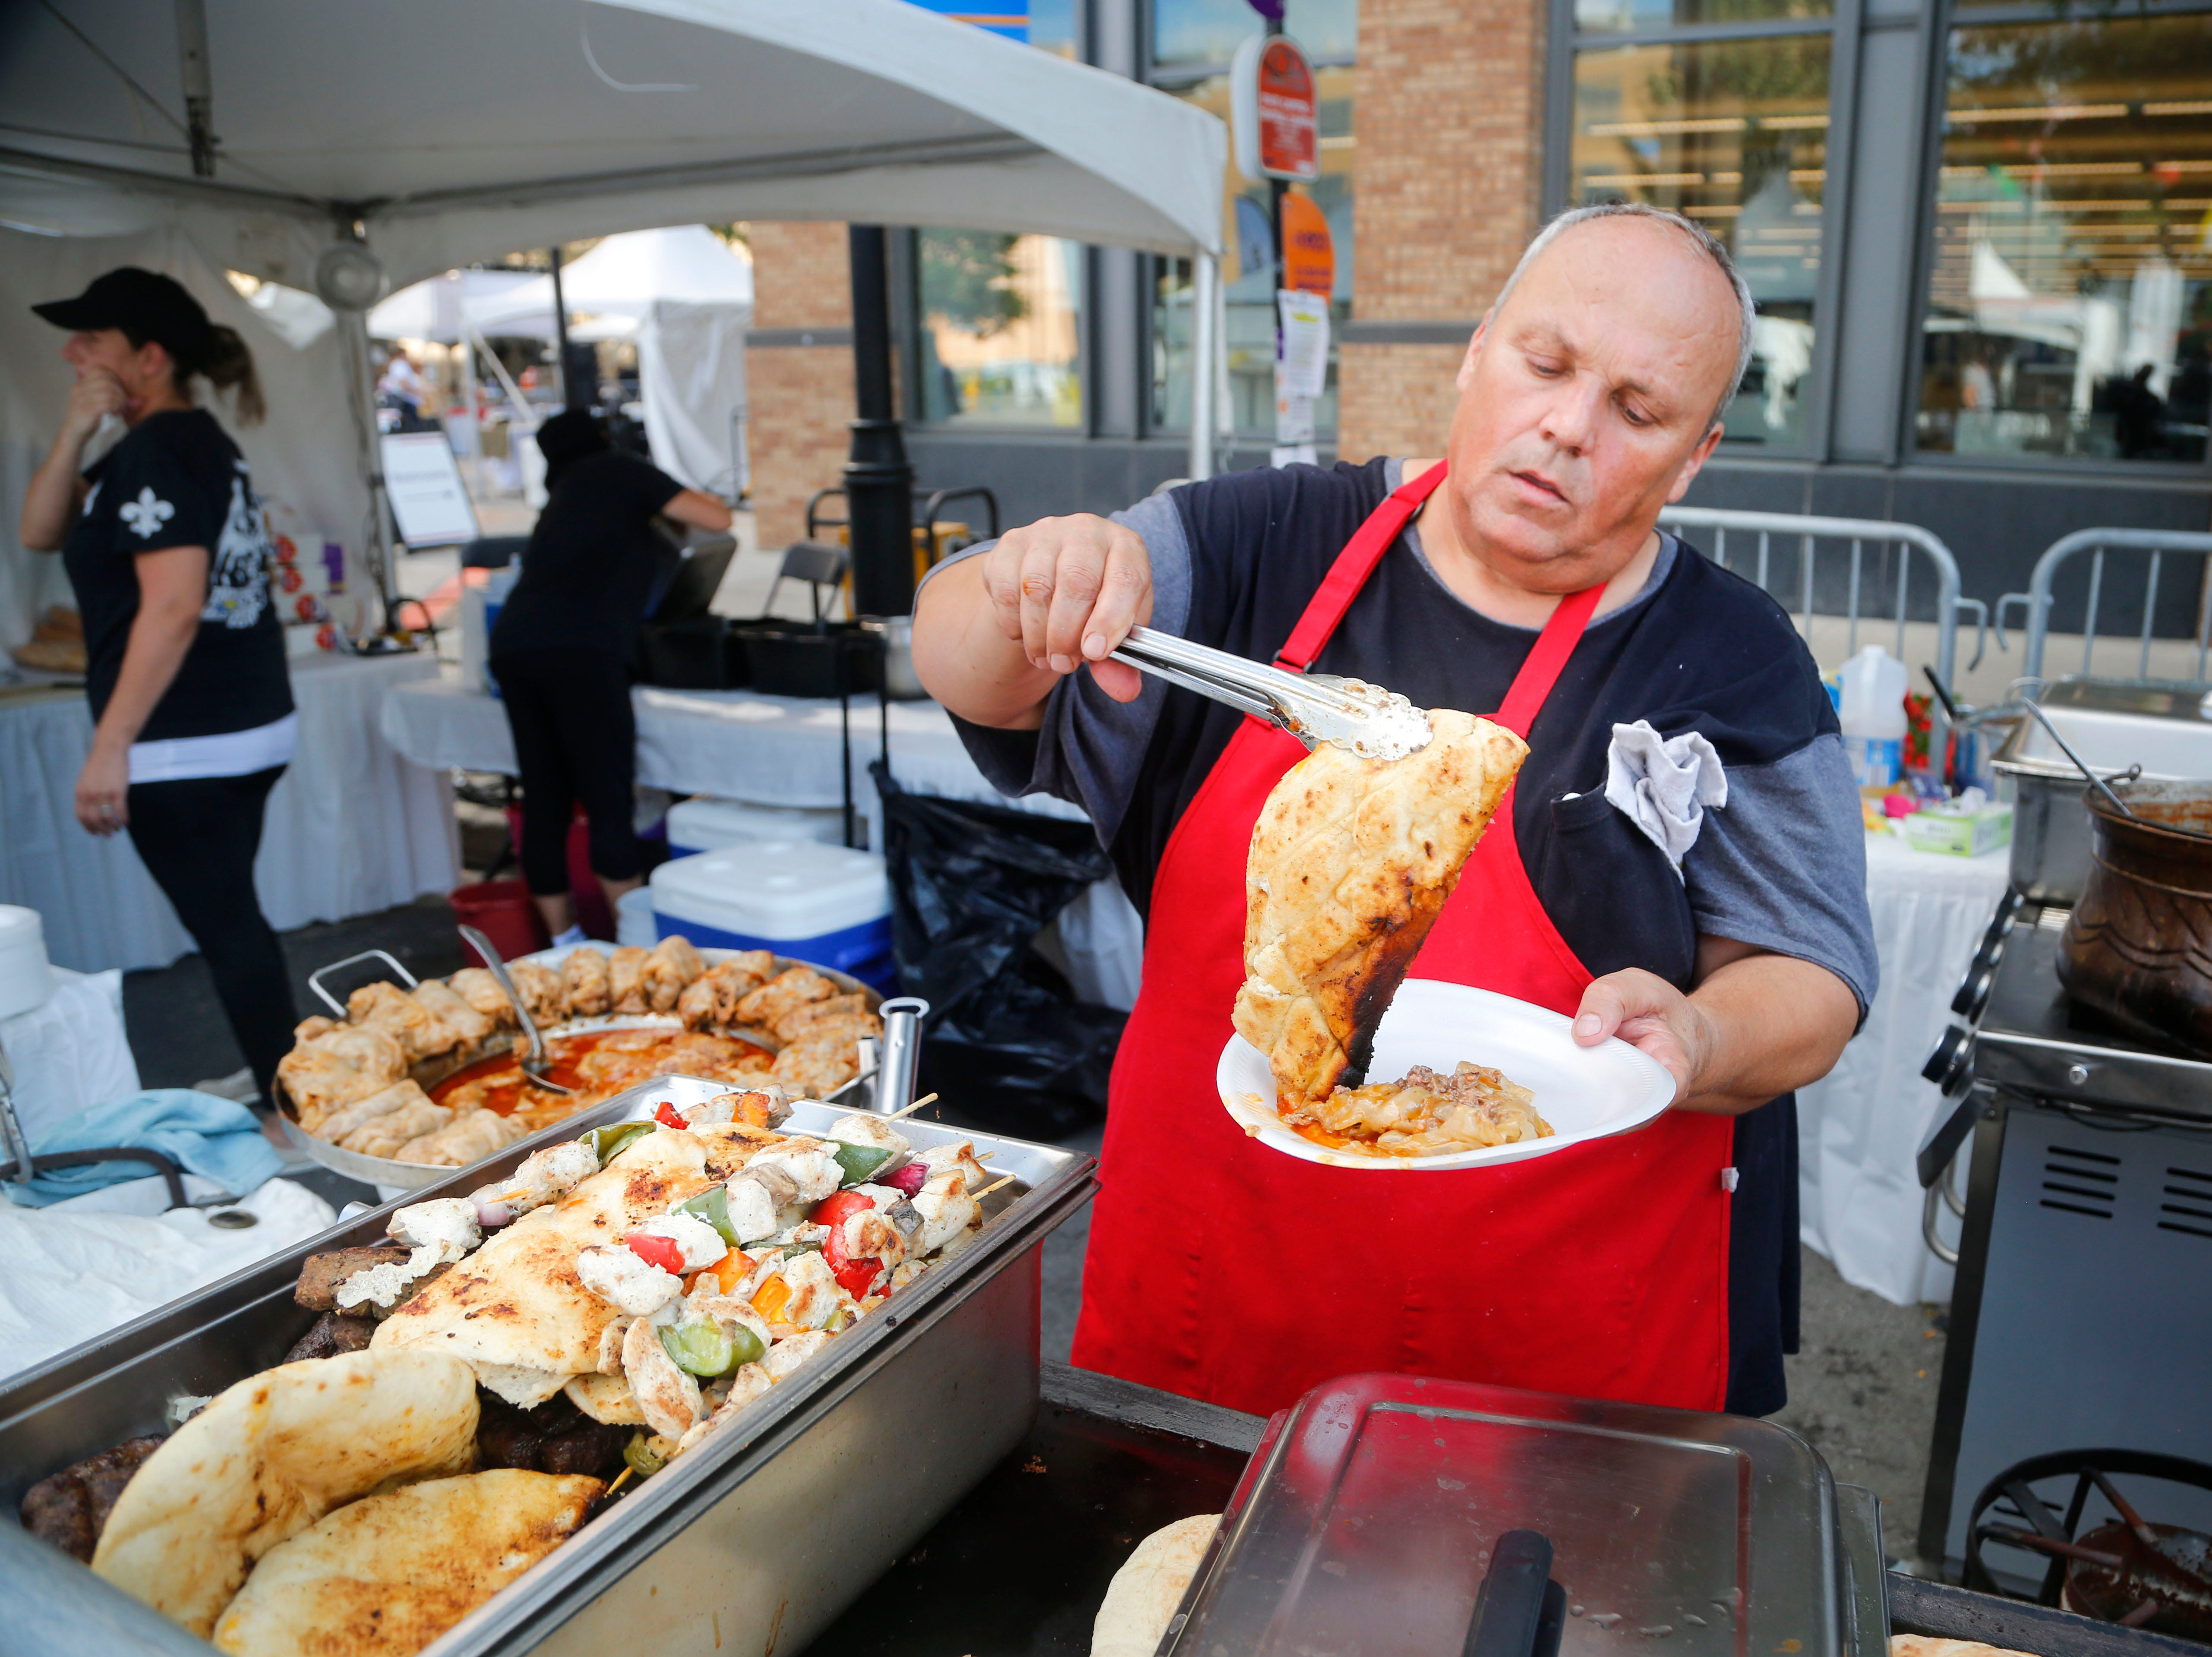 Joe Dzehvid loads up a plate of food at the Papillon Bosnian Food booth at the World Food and Music Festival in Des Moines Sept. 14, 2018.